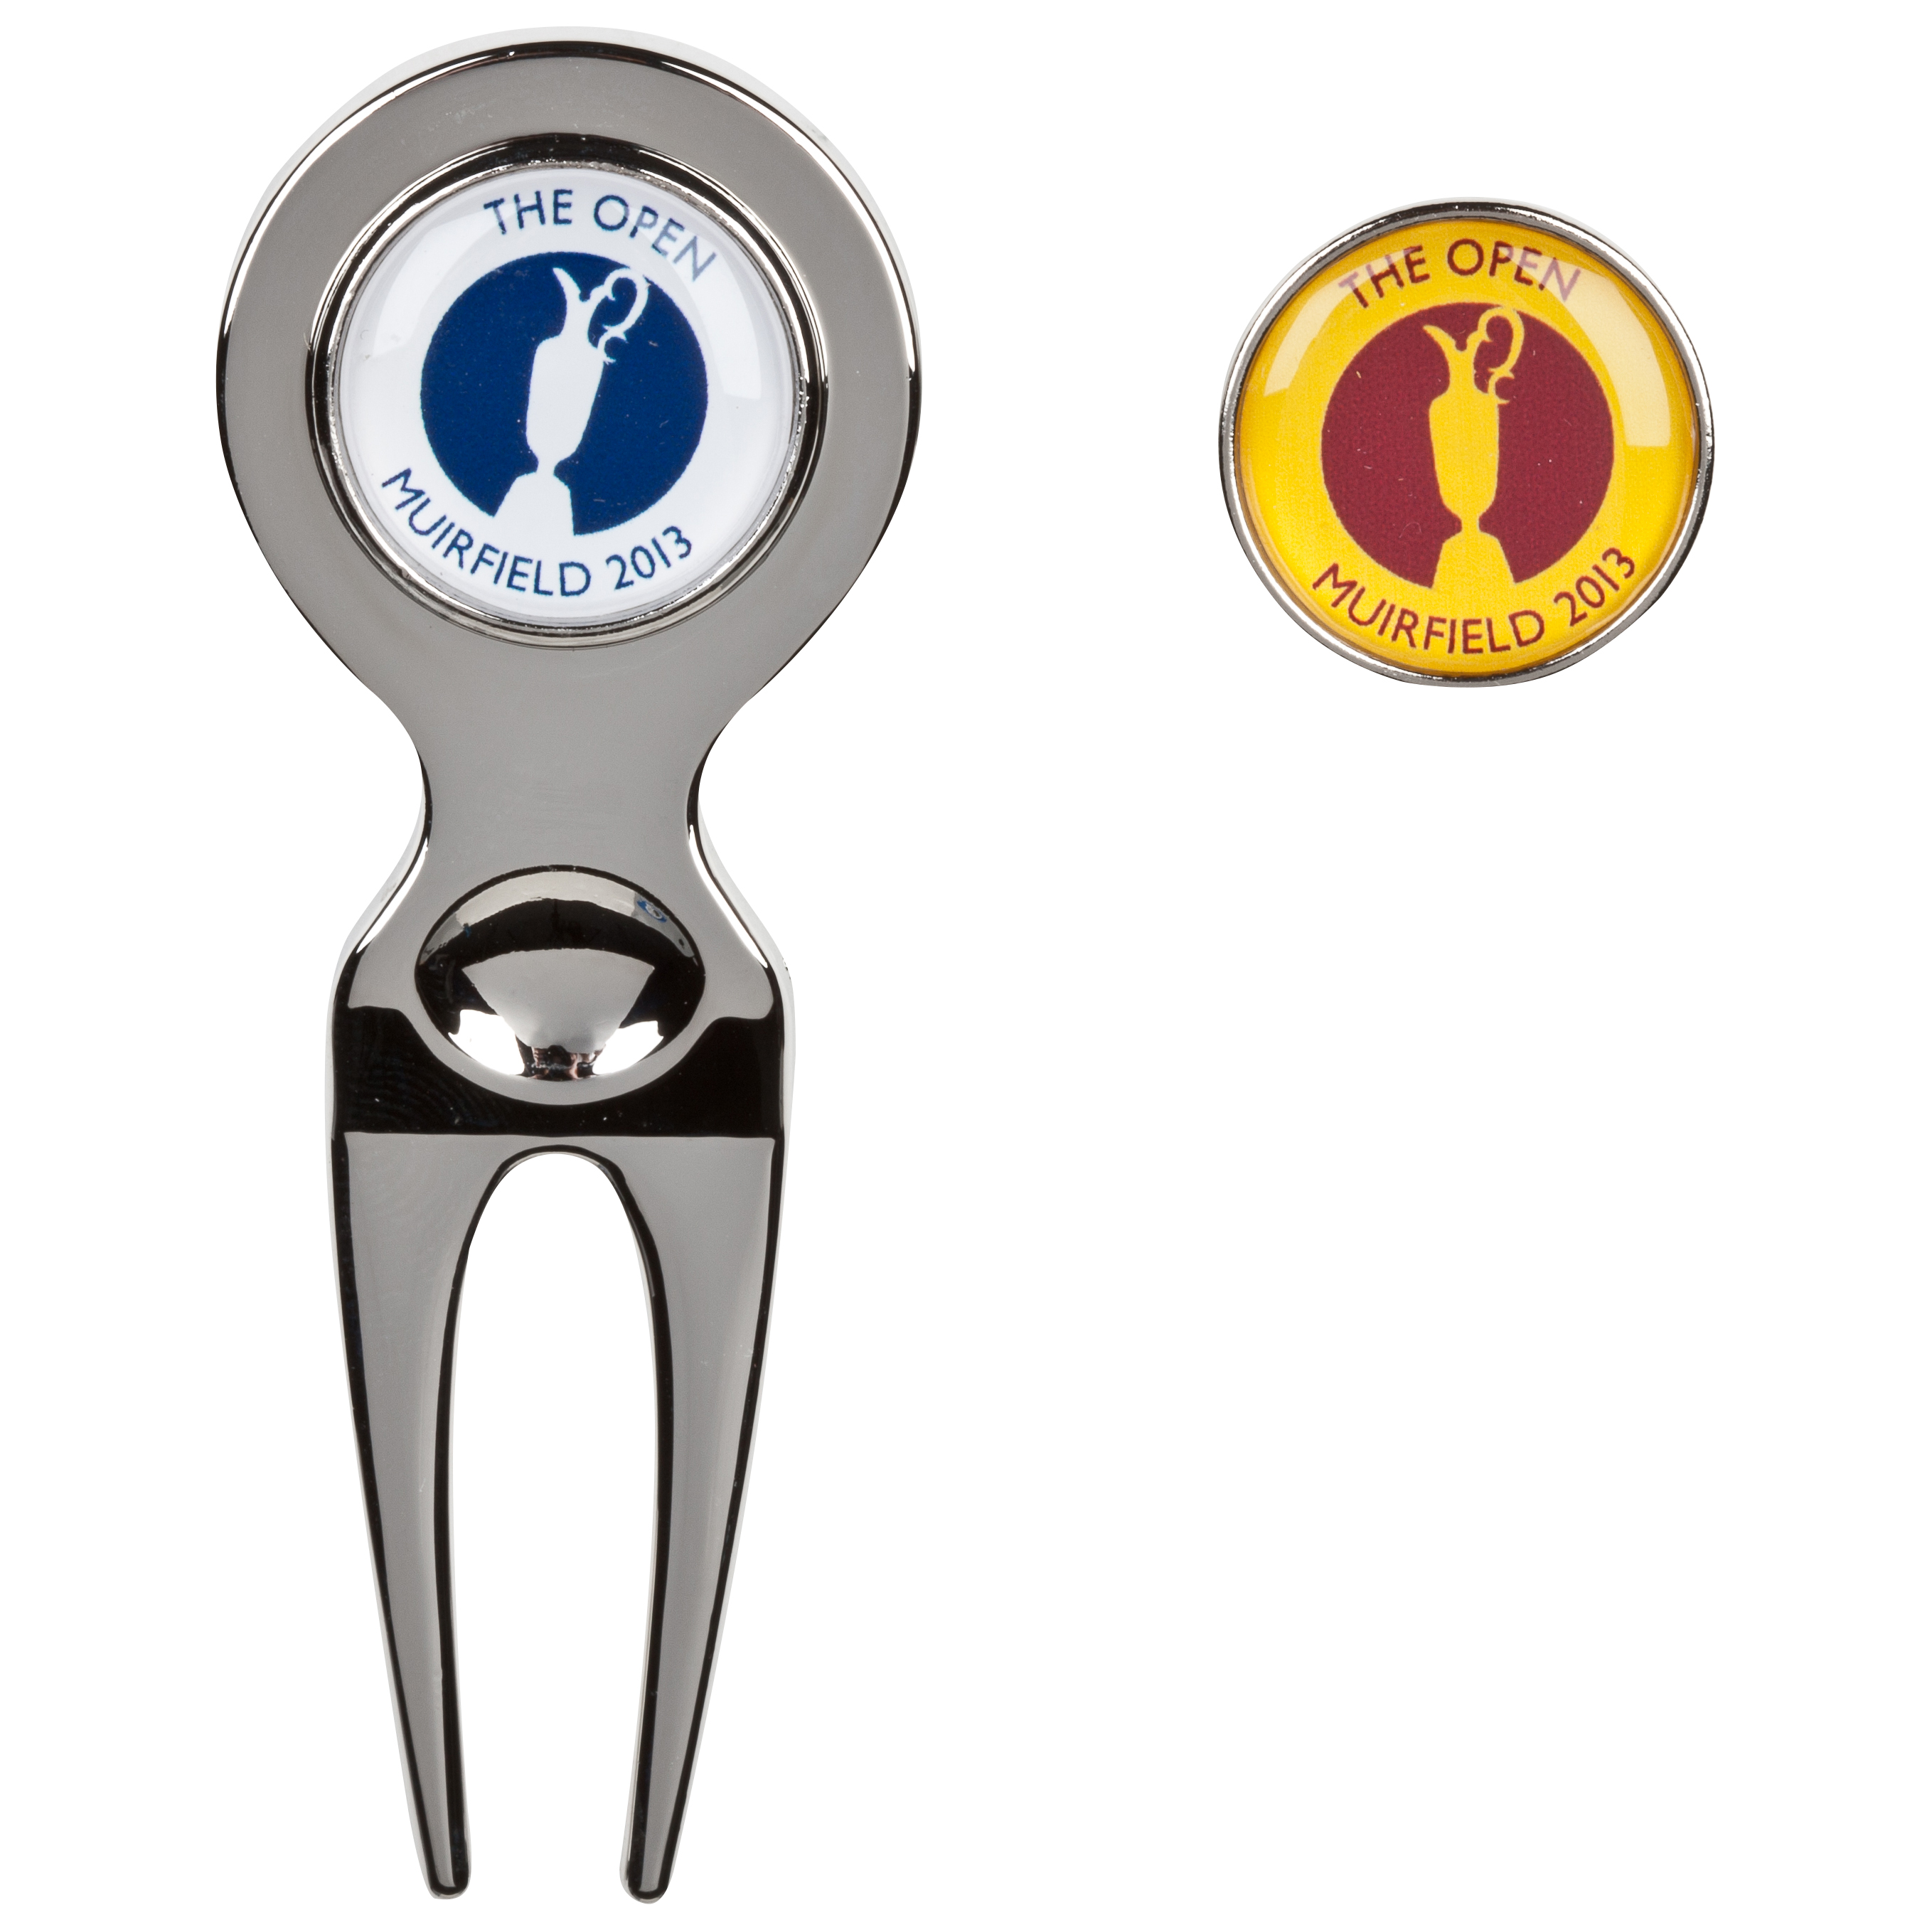 The Open Championship 2013 Muirfield Pitchfork & Ball Marker Yellow